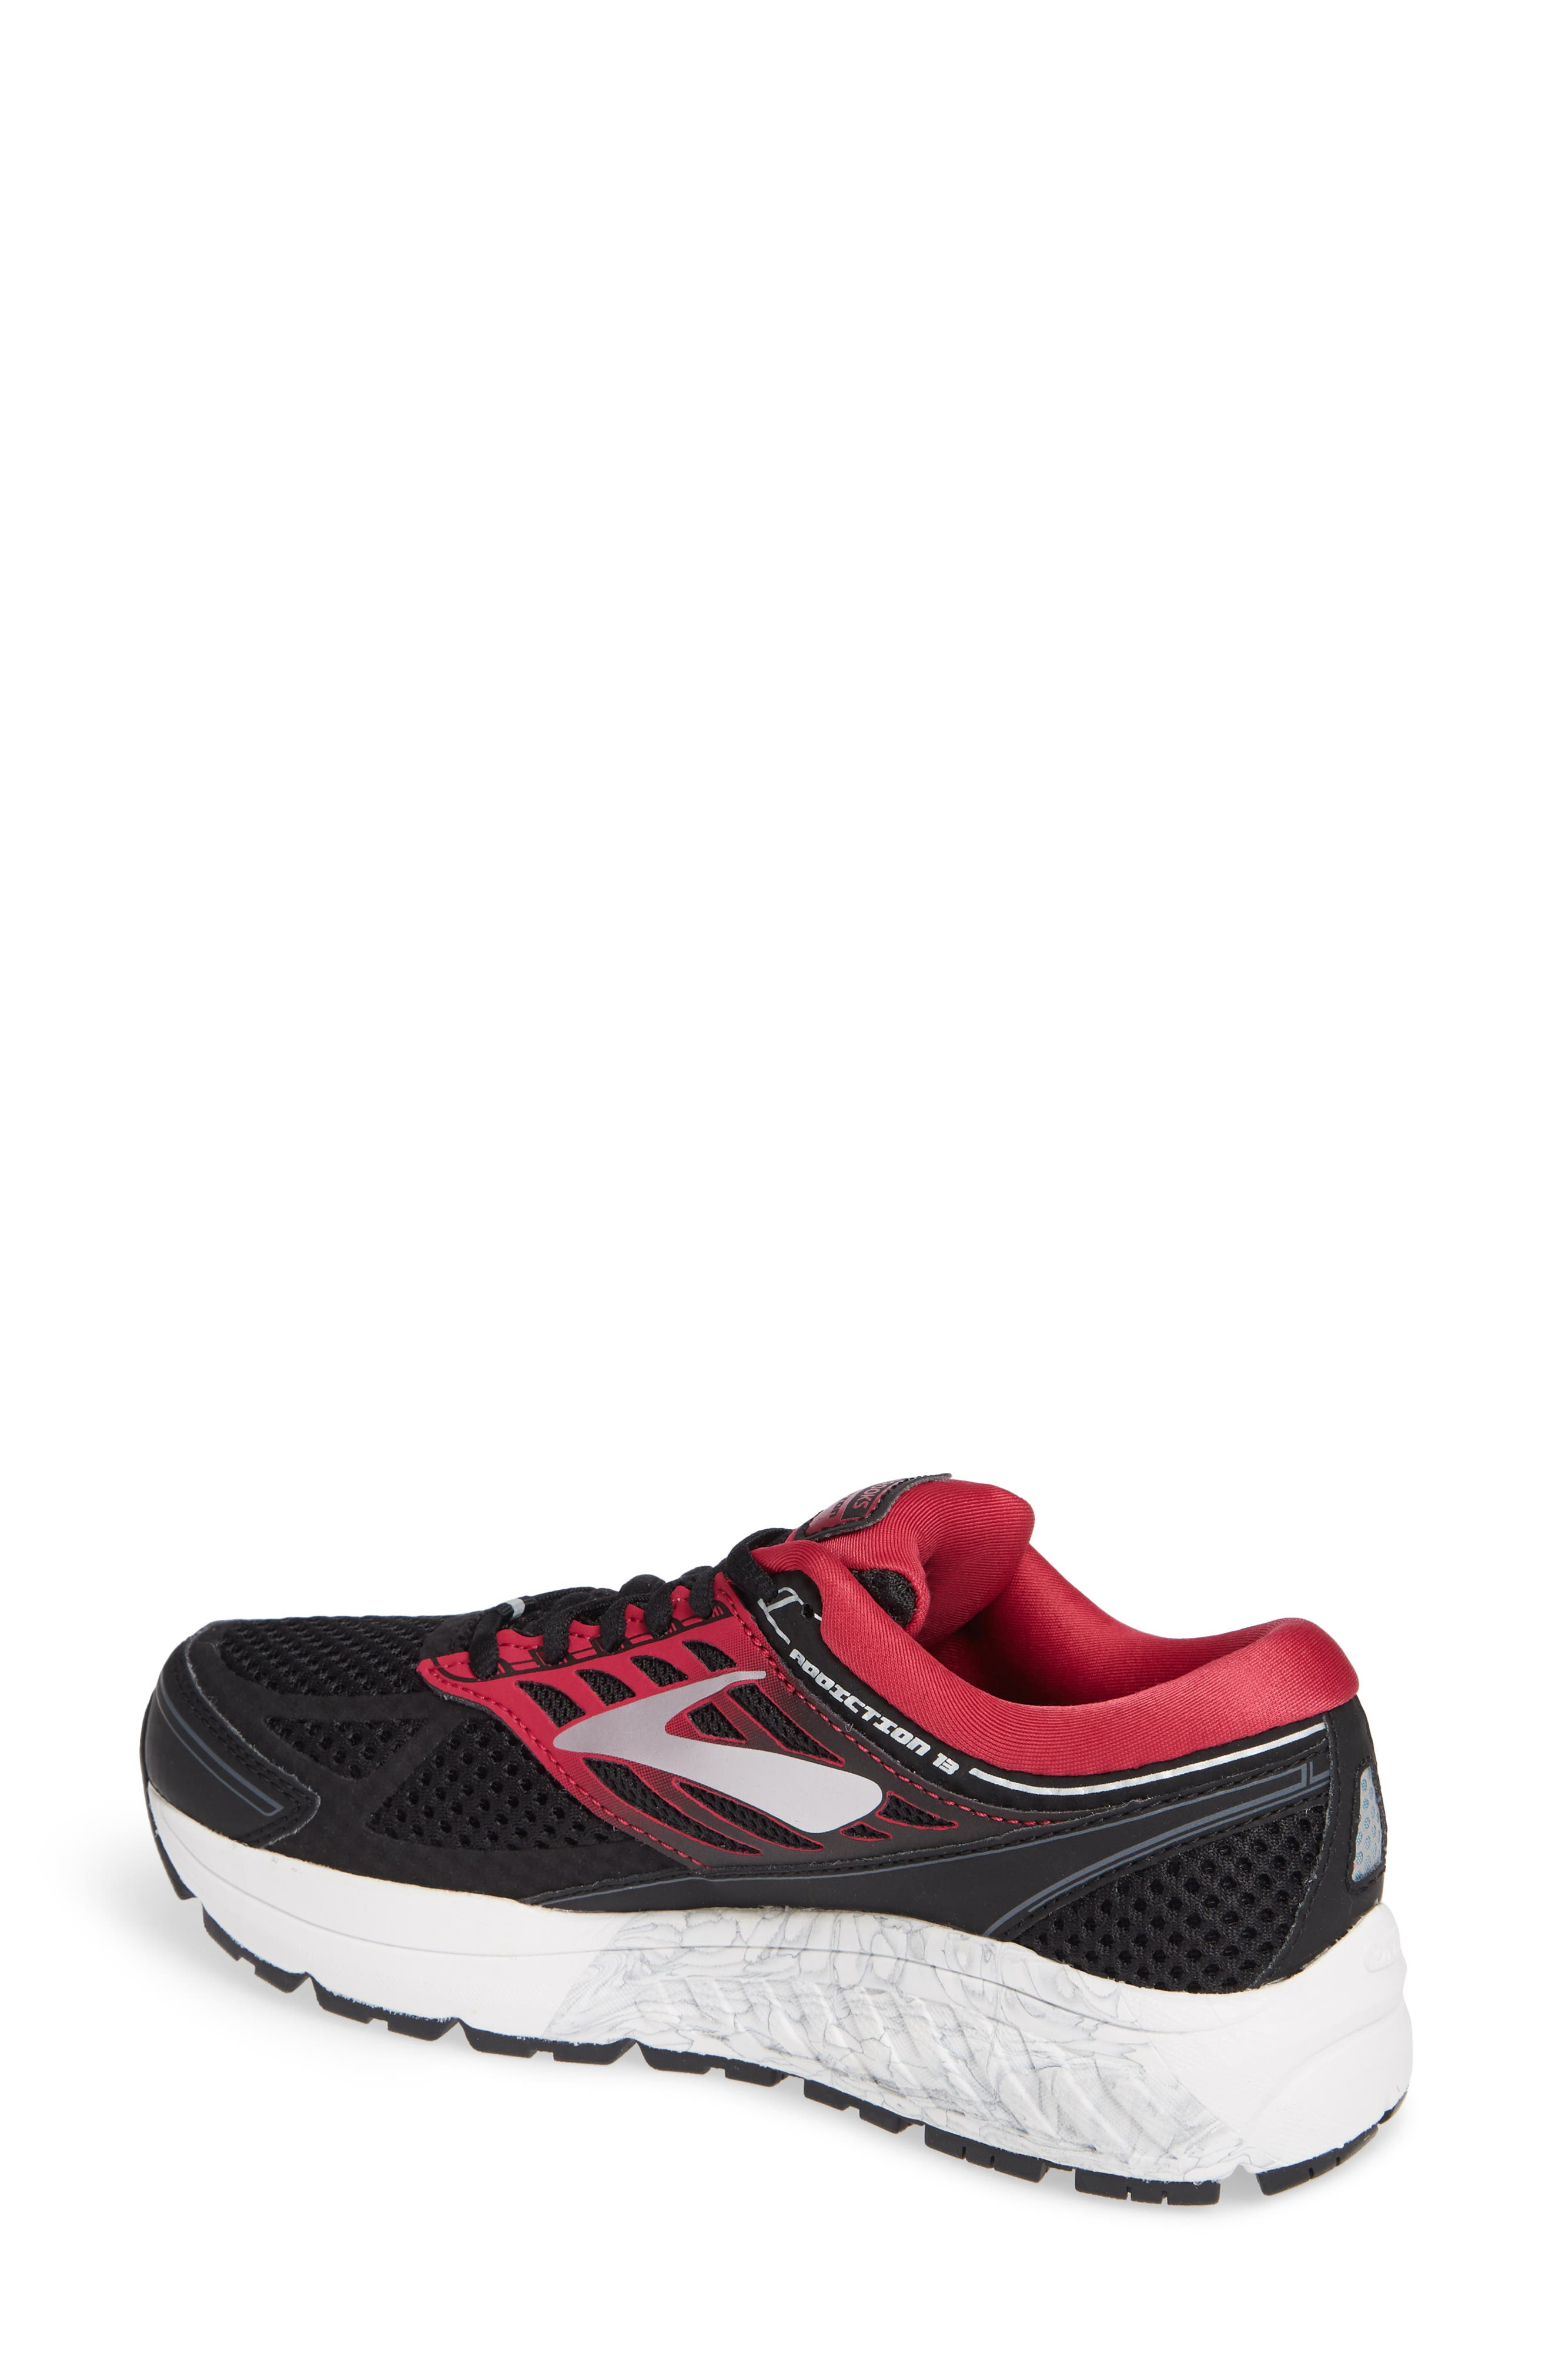 Addiction 13 Running Shoe,                             Alternate thumbnail 2, color,                             BLACK/ PINK/ GREY